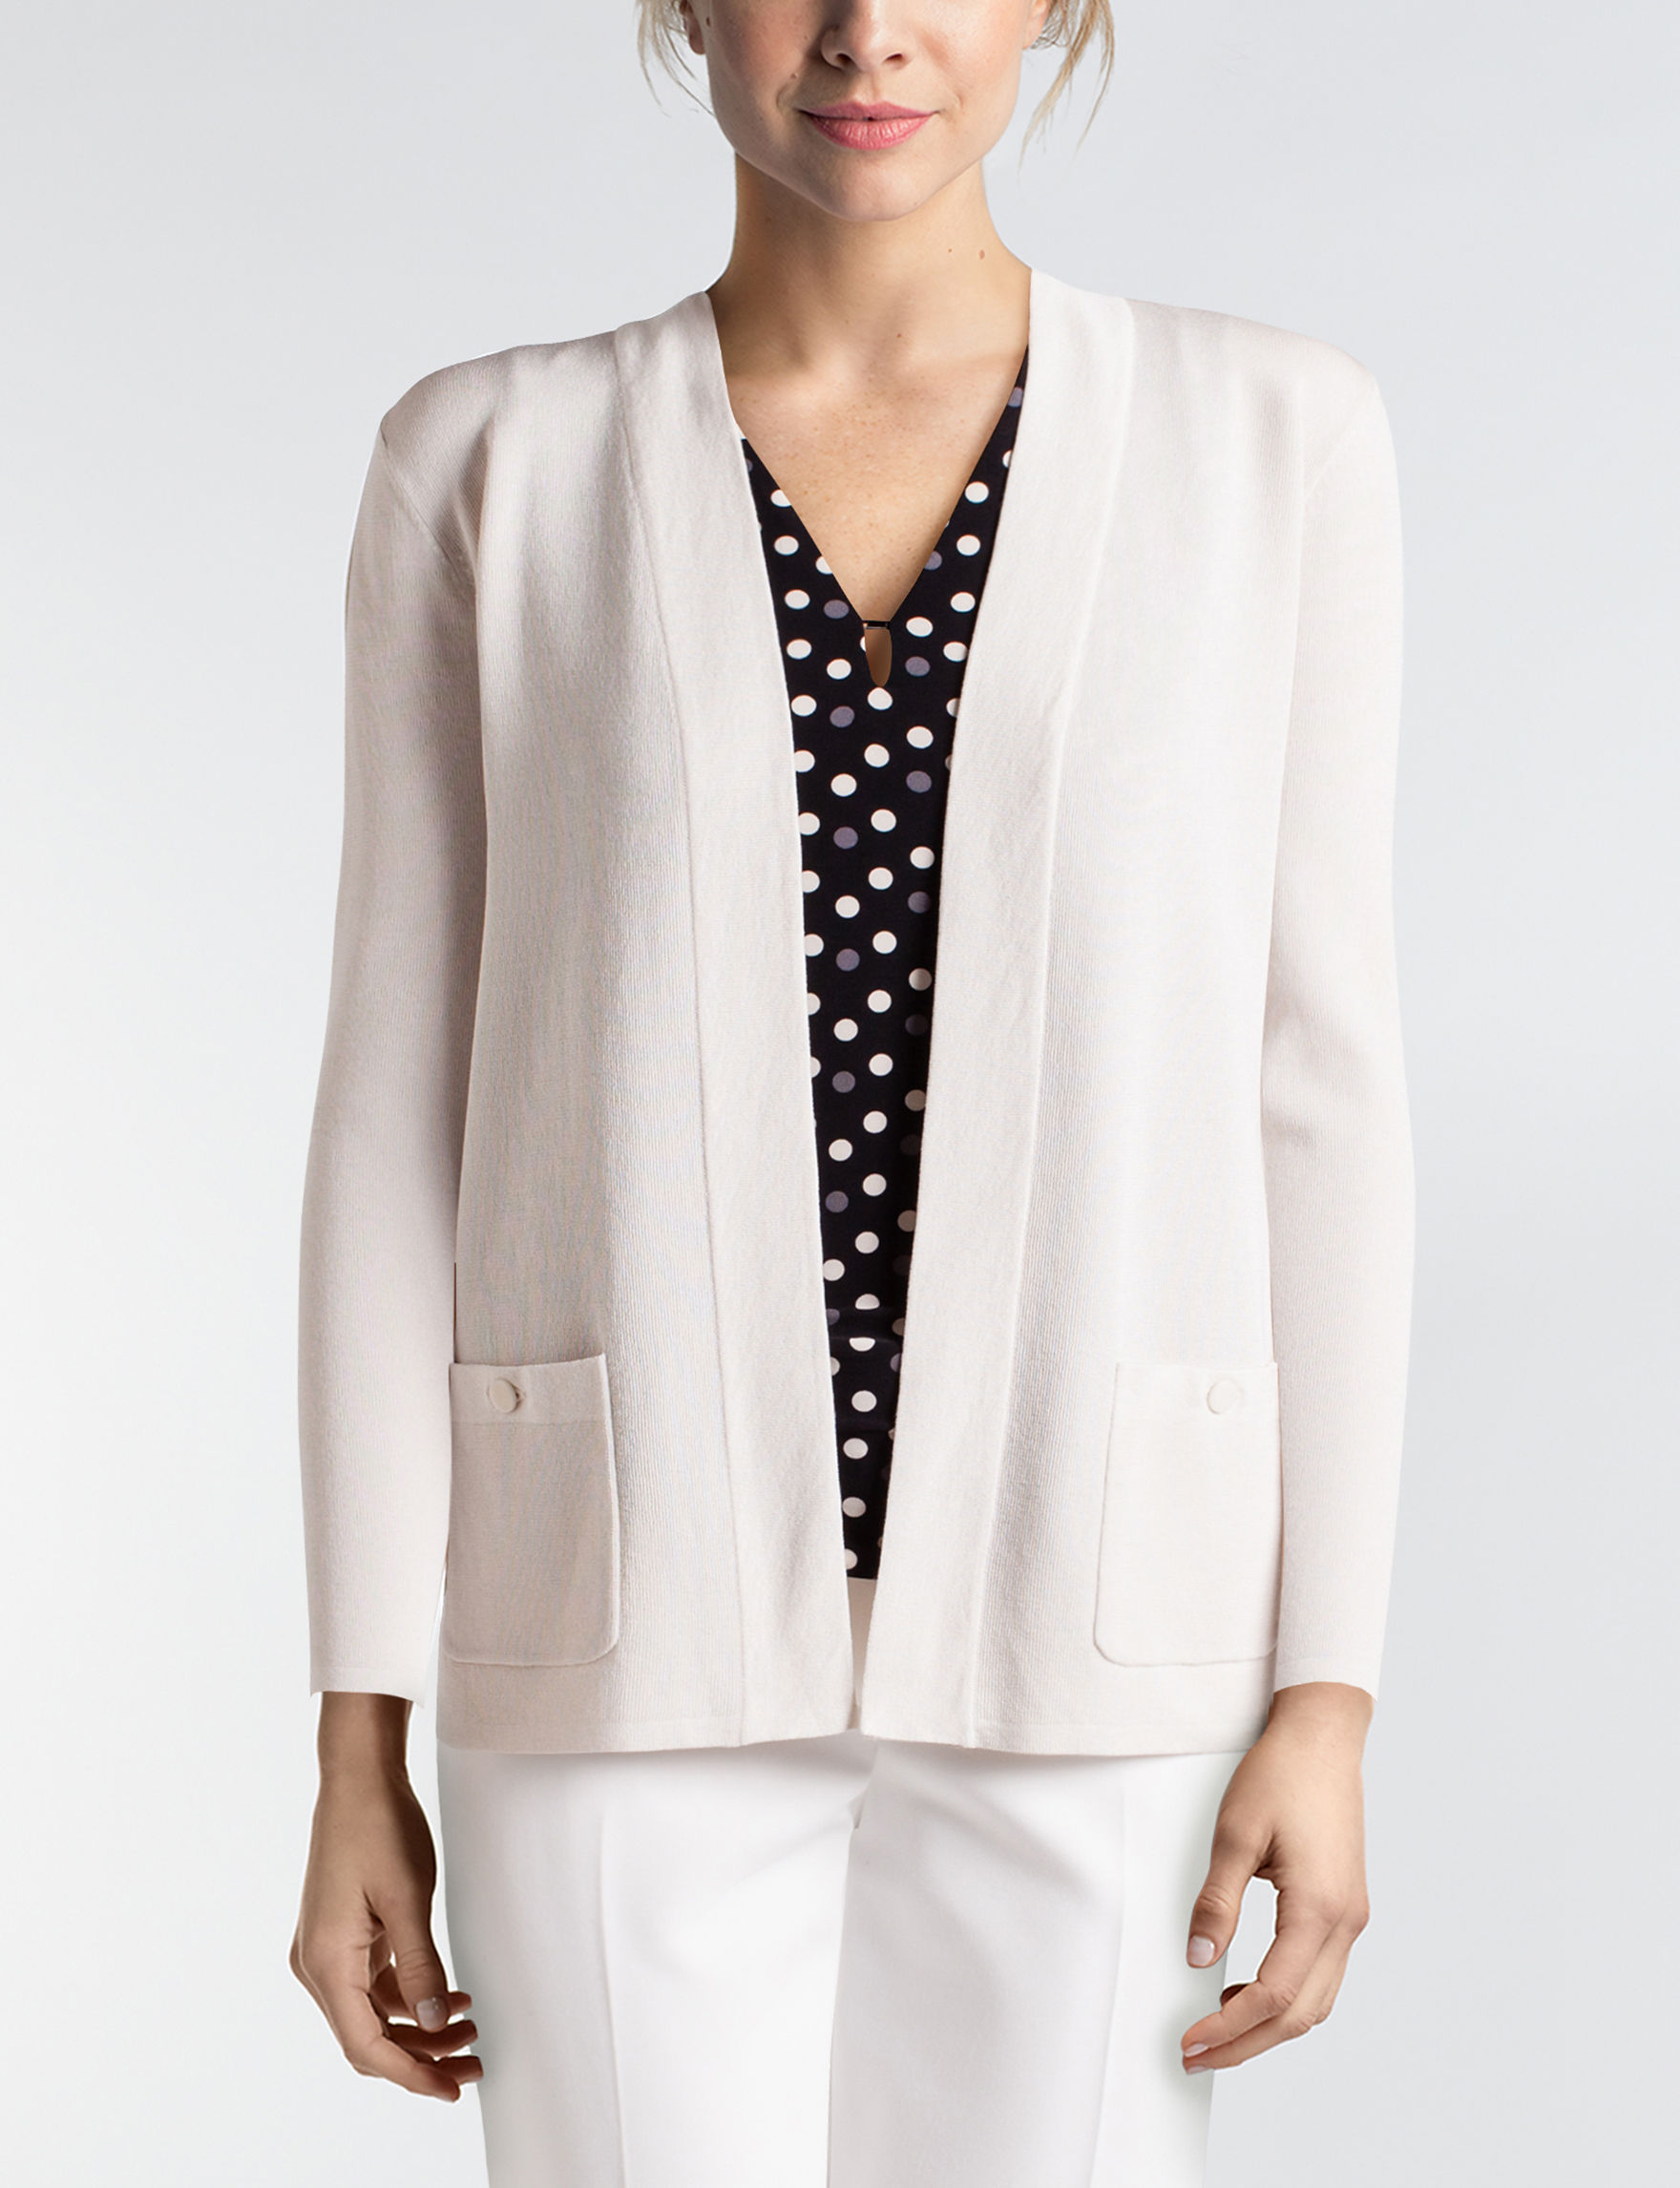 Anne Klein Light Beige Cardigans